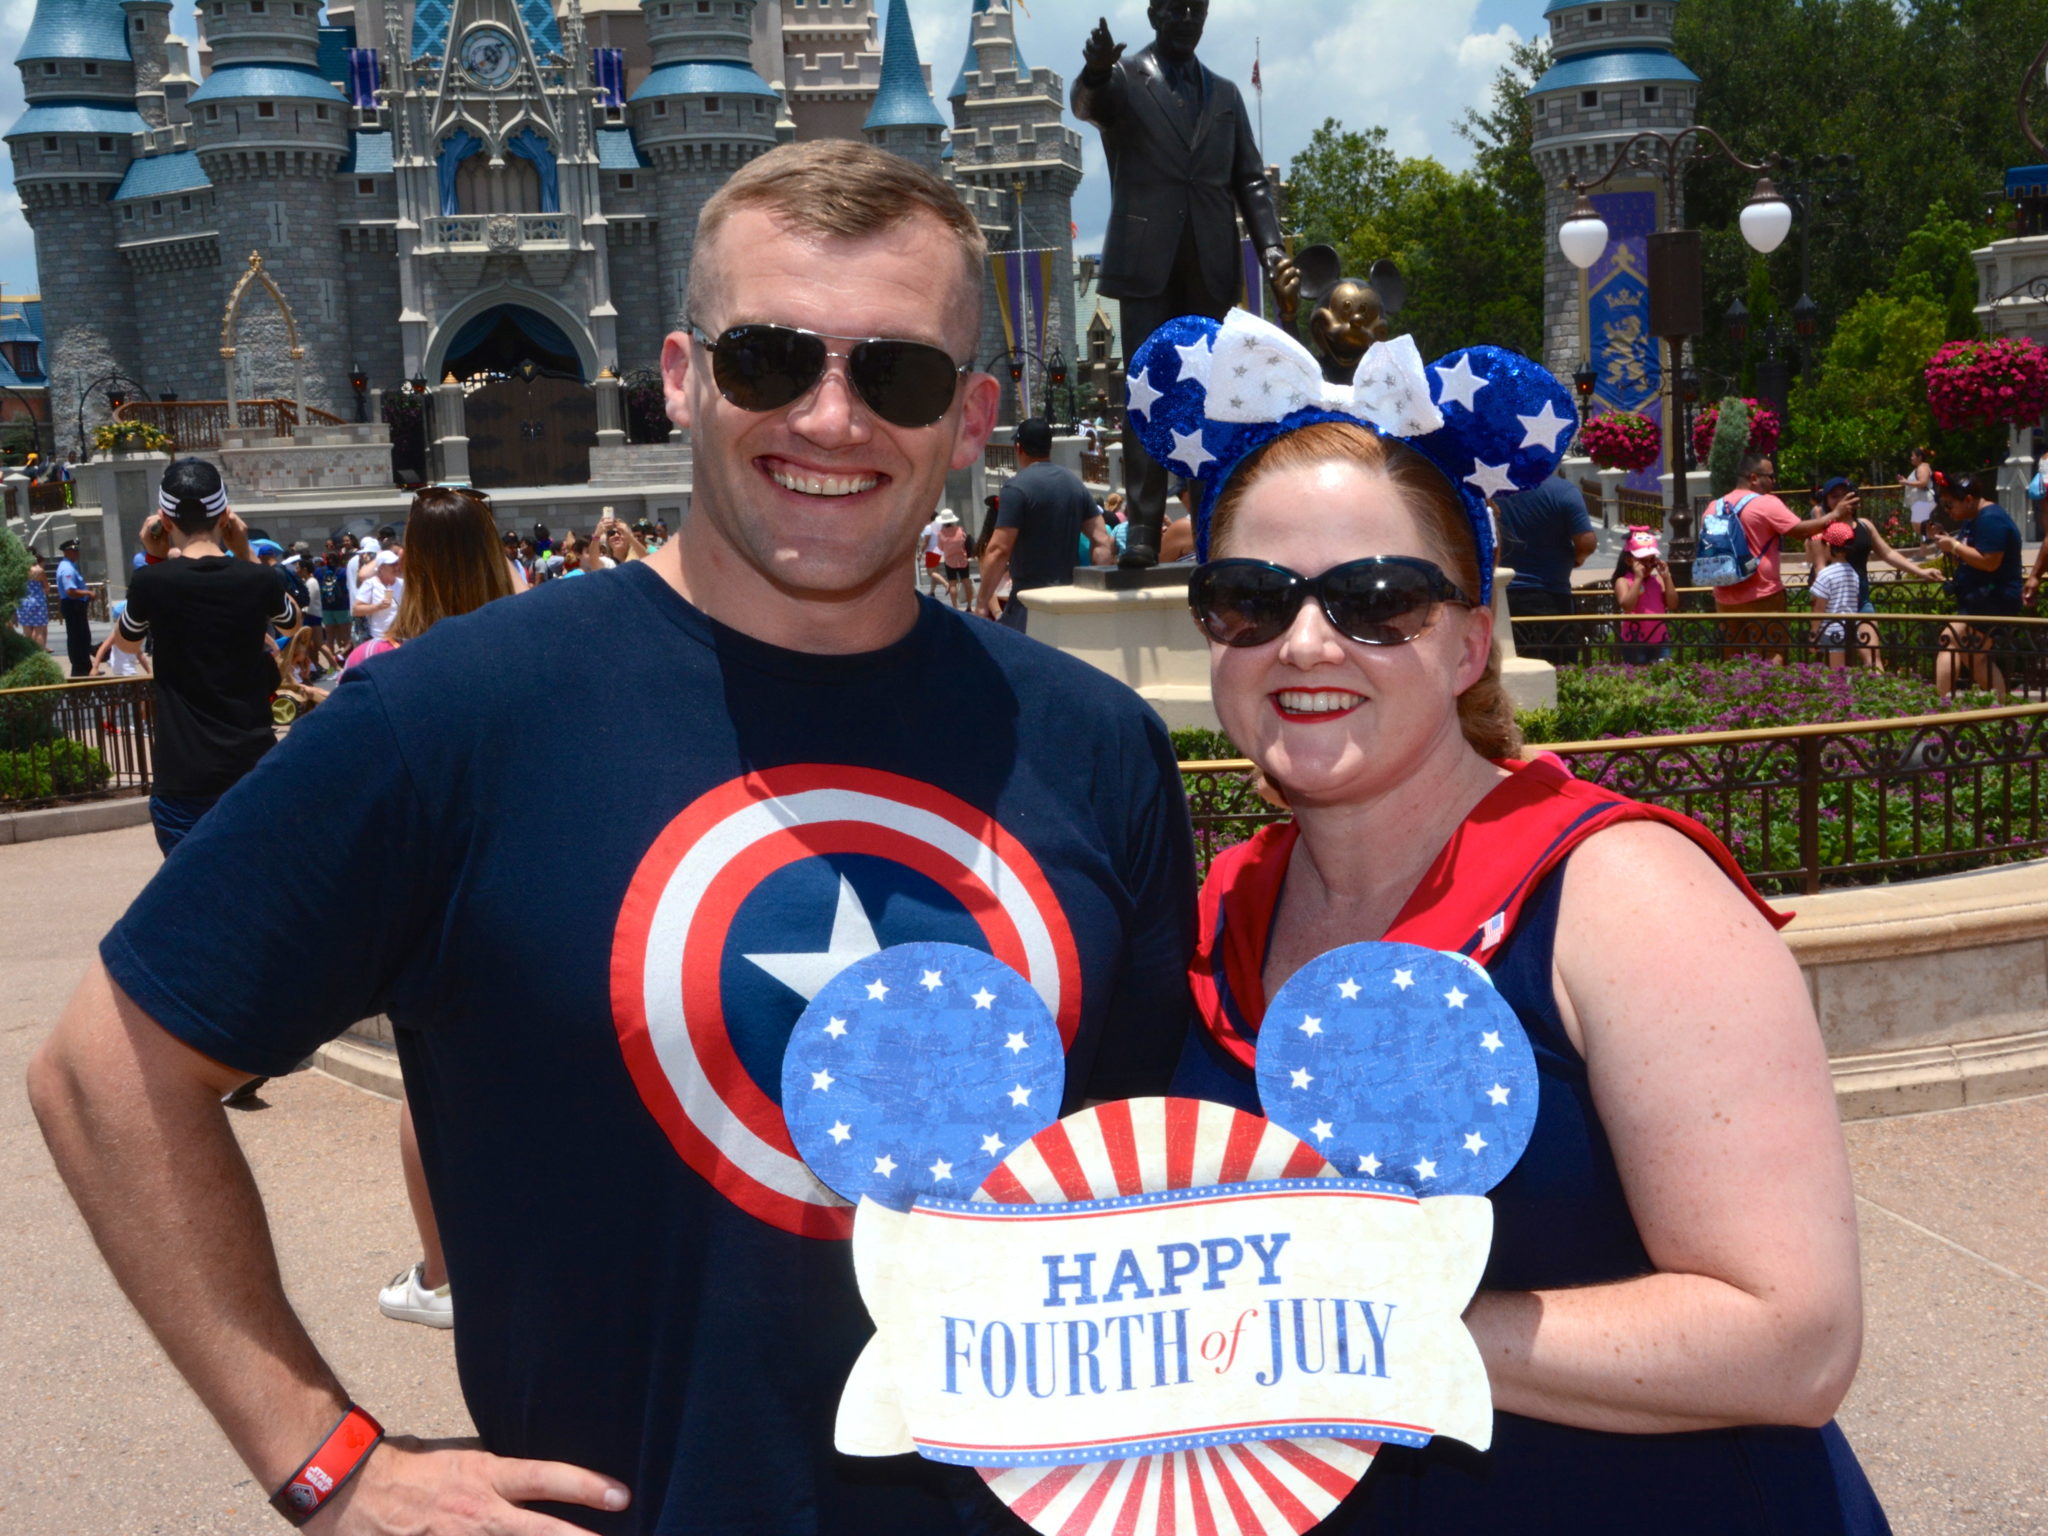 Visiting WDW for Fourth of July